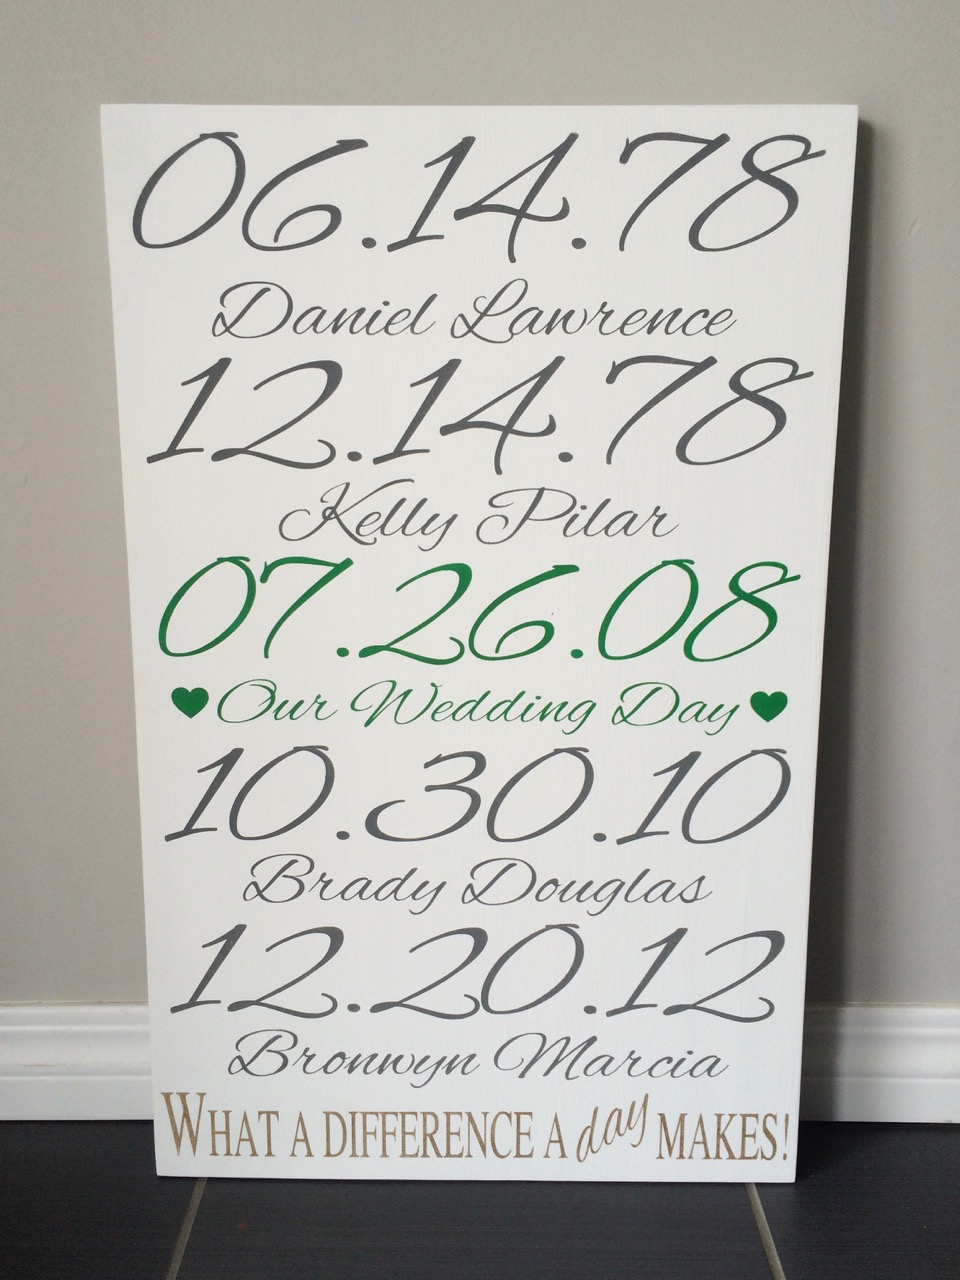 $55 - 14 inches by 22 inches. Vinyl letters.